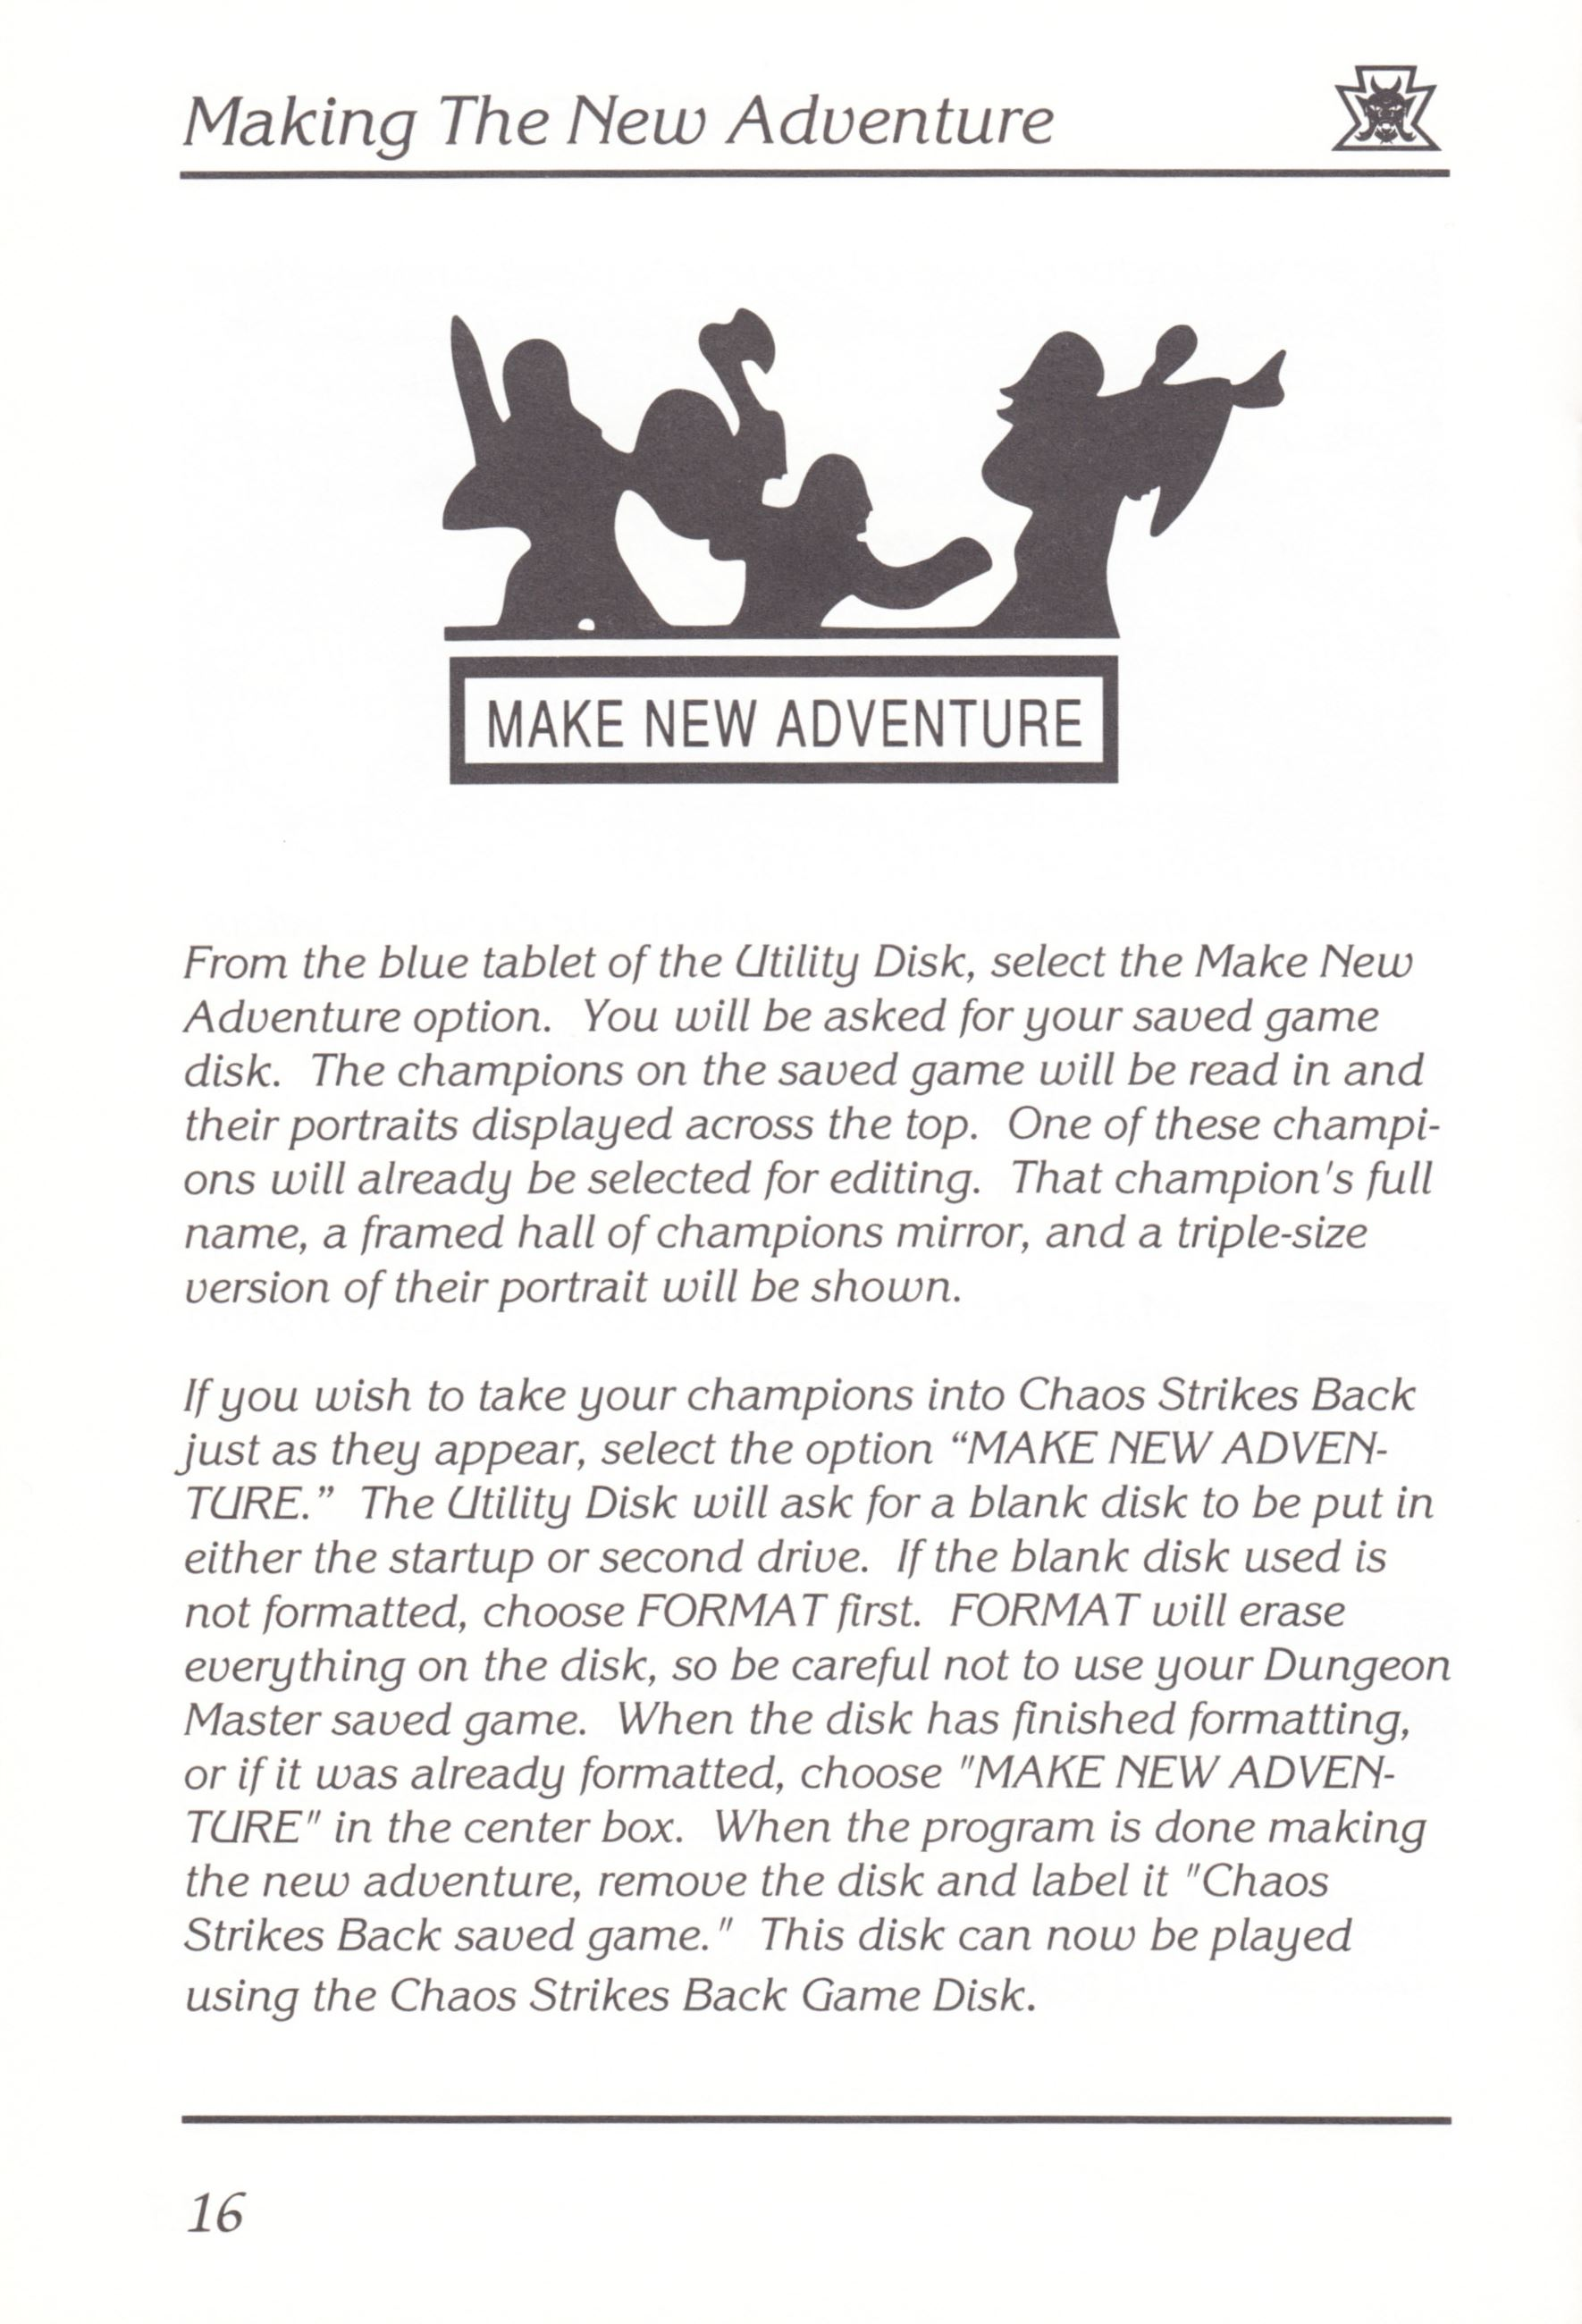 Game - Chaos Strikes Back - UK - Amiga - Manual - Page 018 - Scan